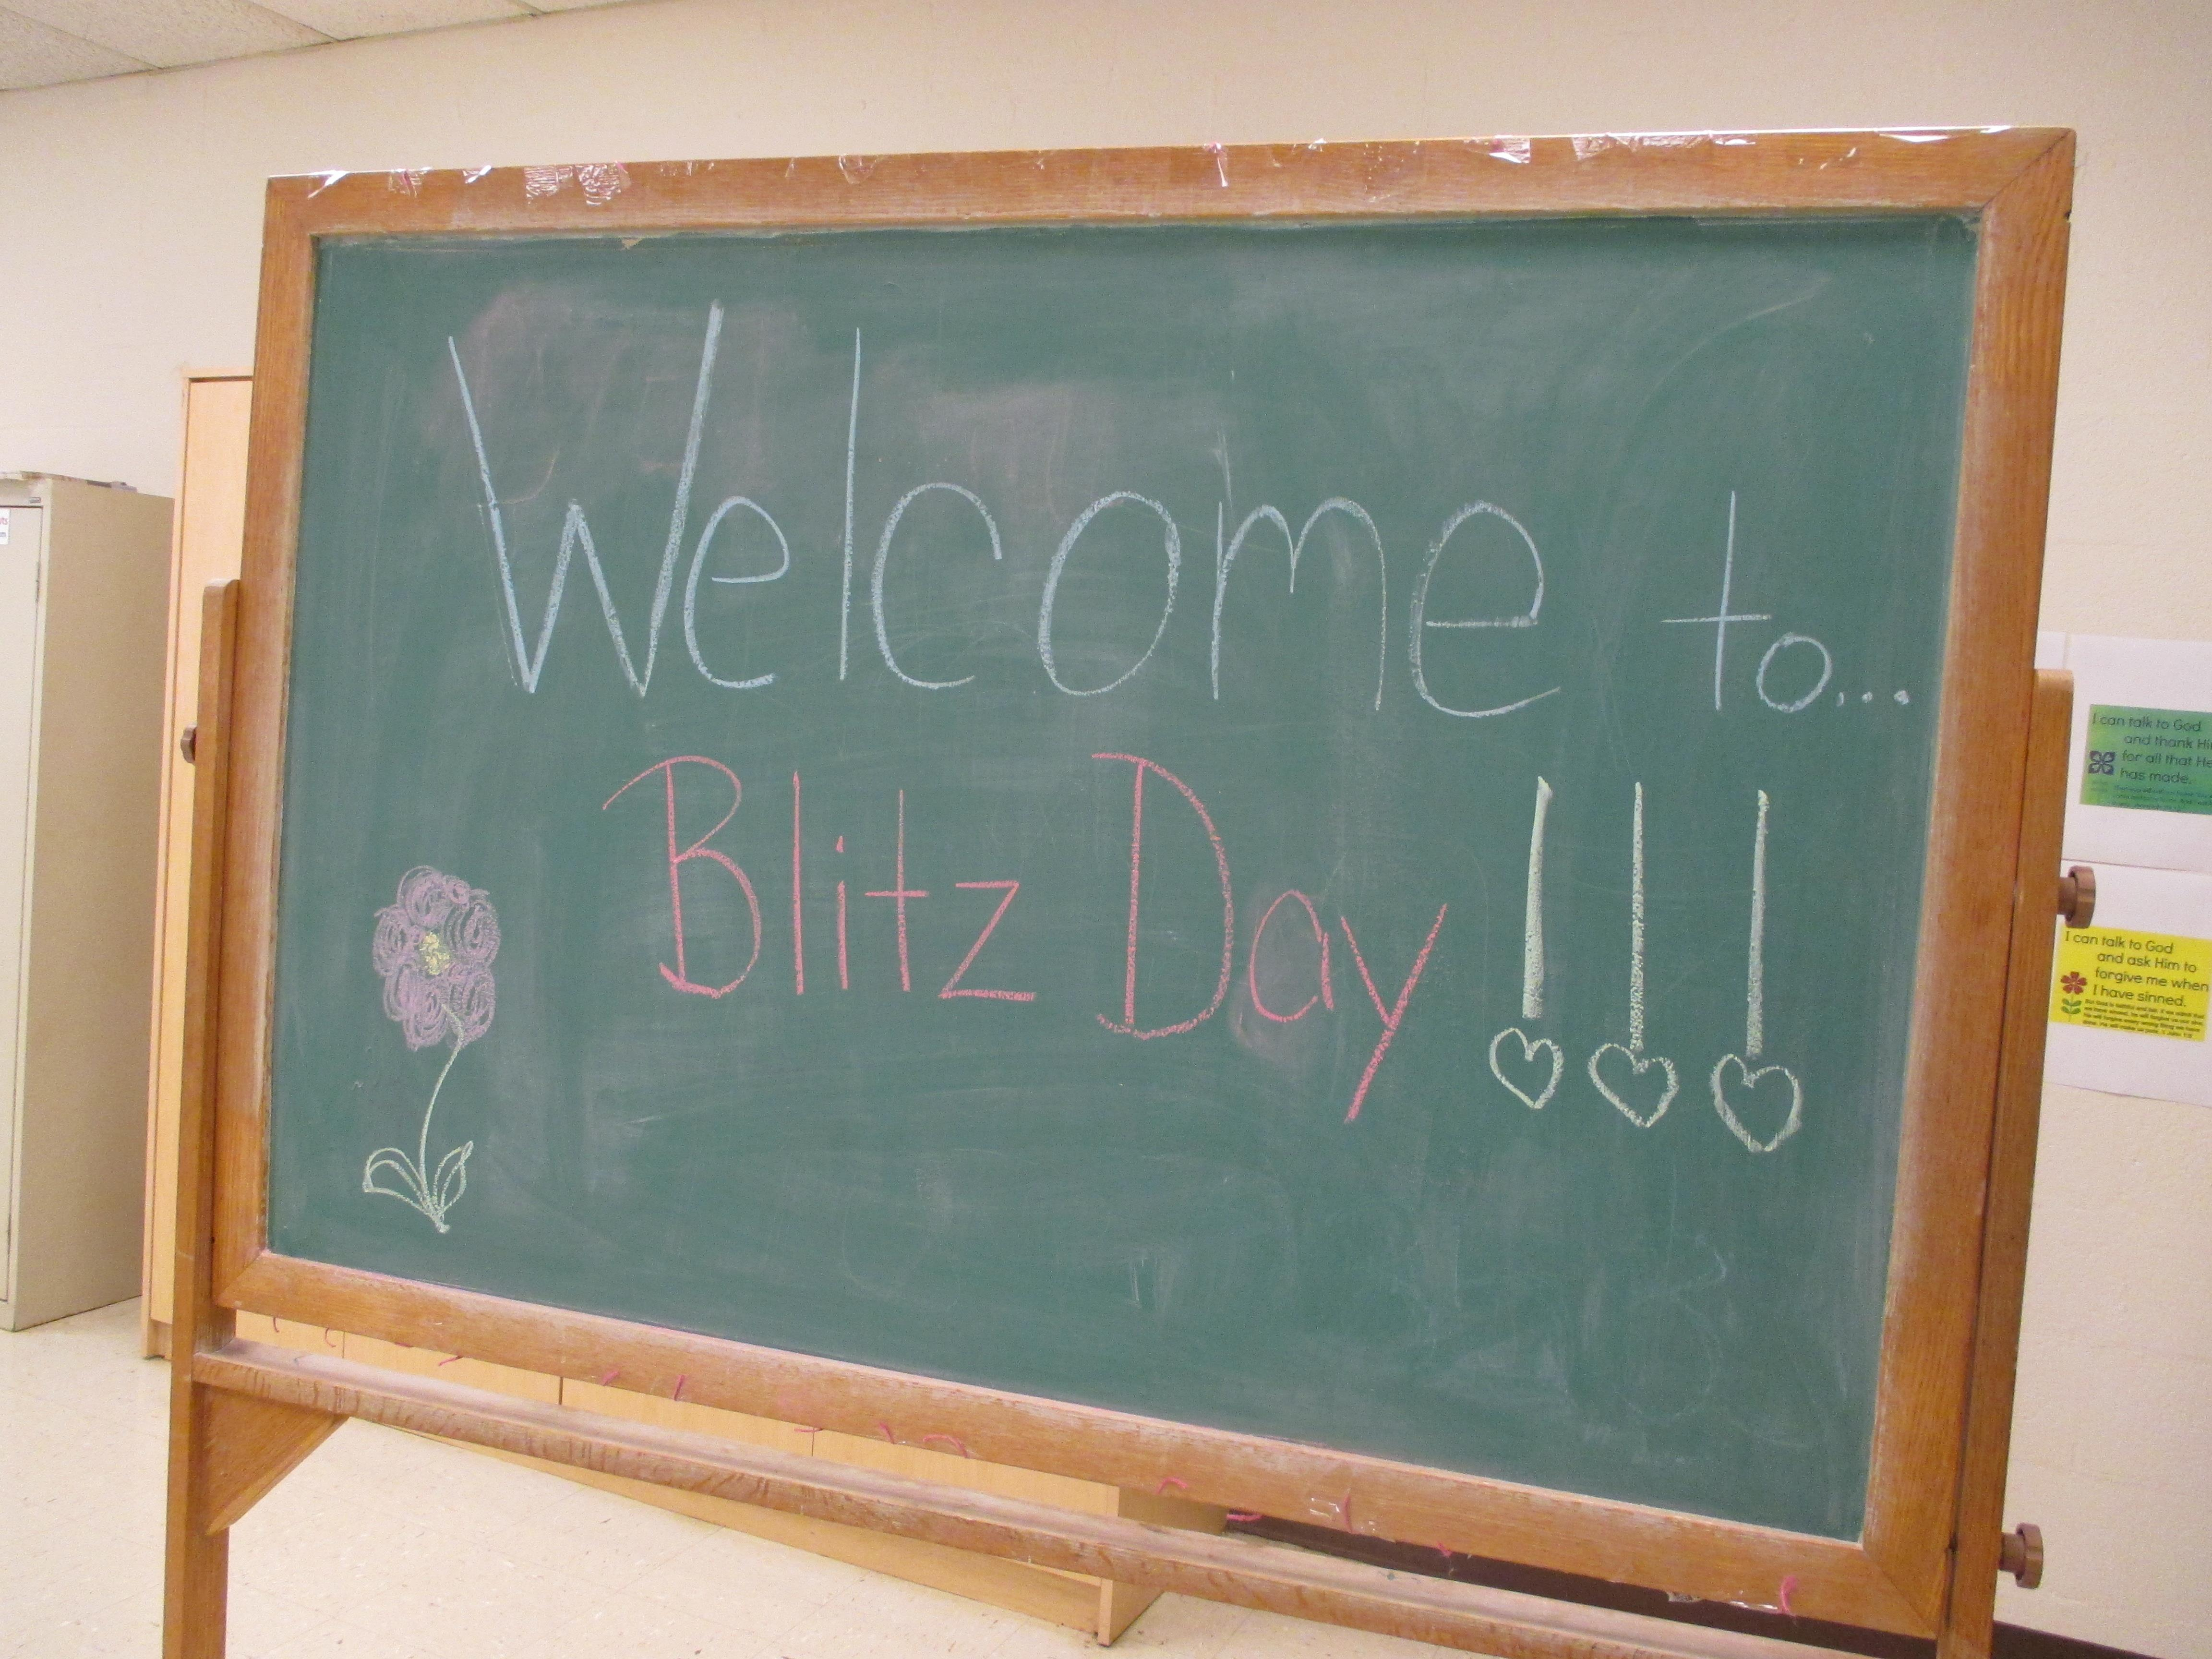 A Look Inside Blitz Day